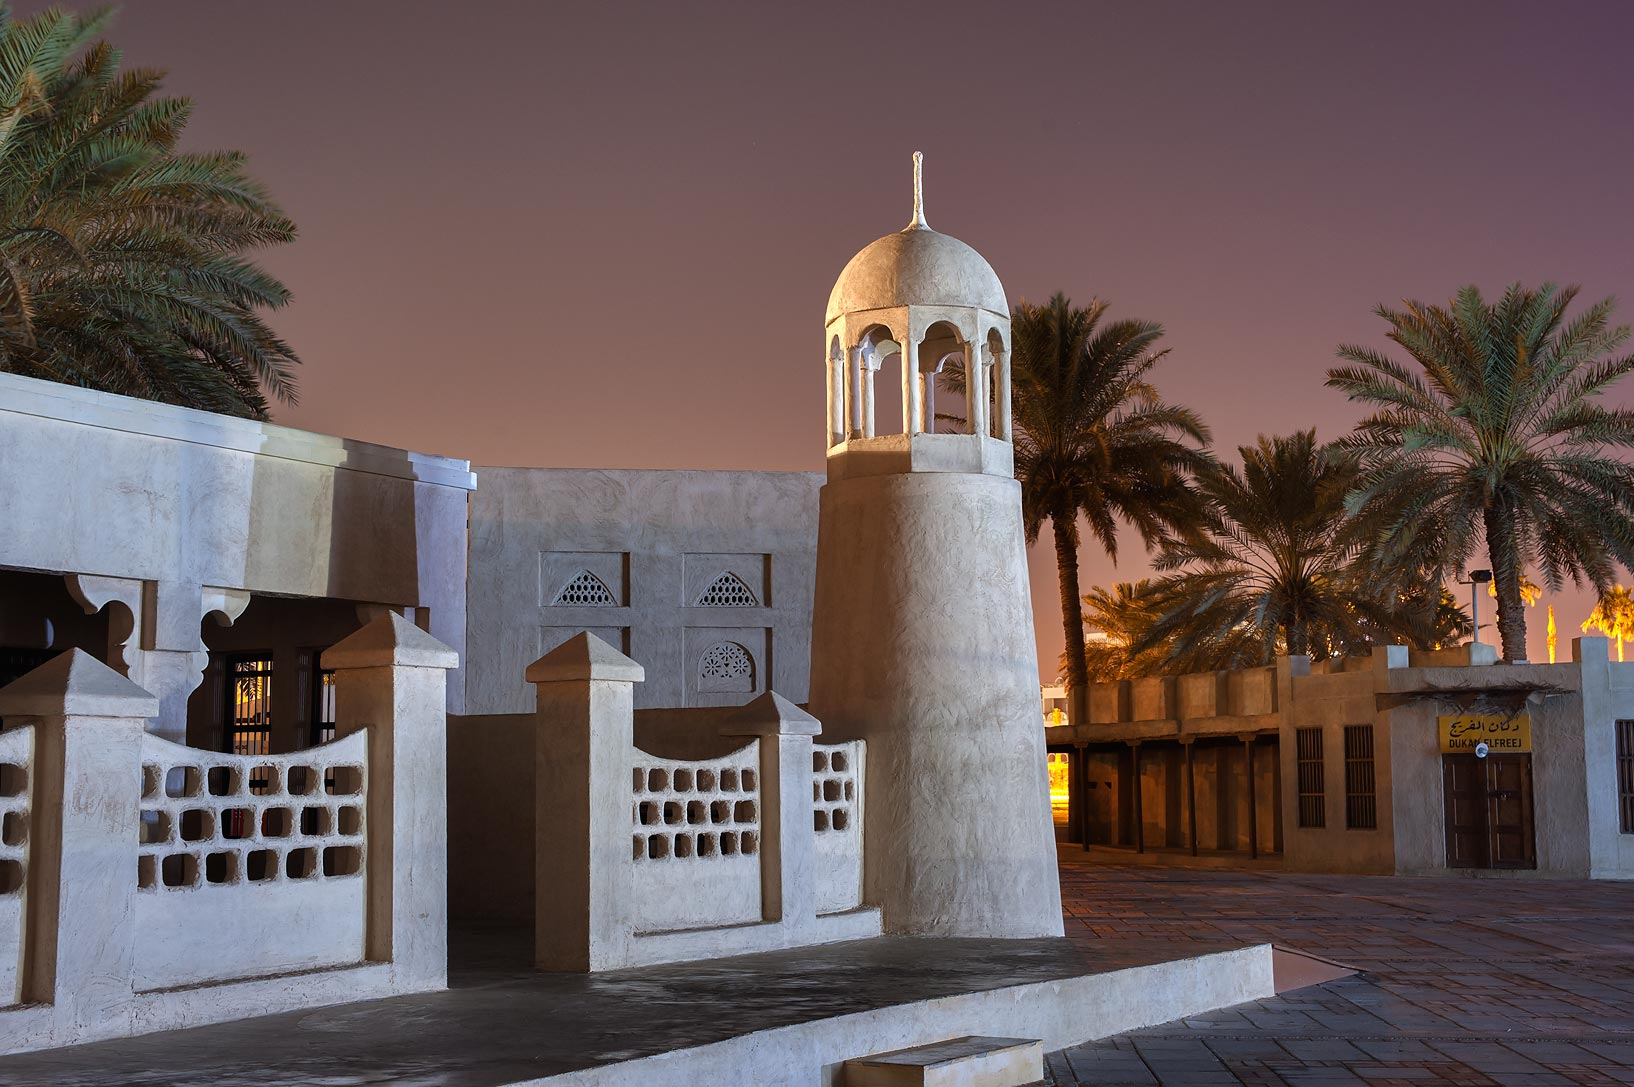 Minaret of a reconstructed historical mosque near...on Corniche Promenade. Doha, Qatar